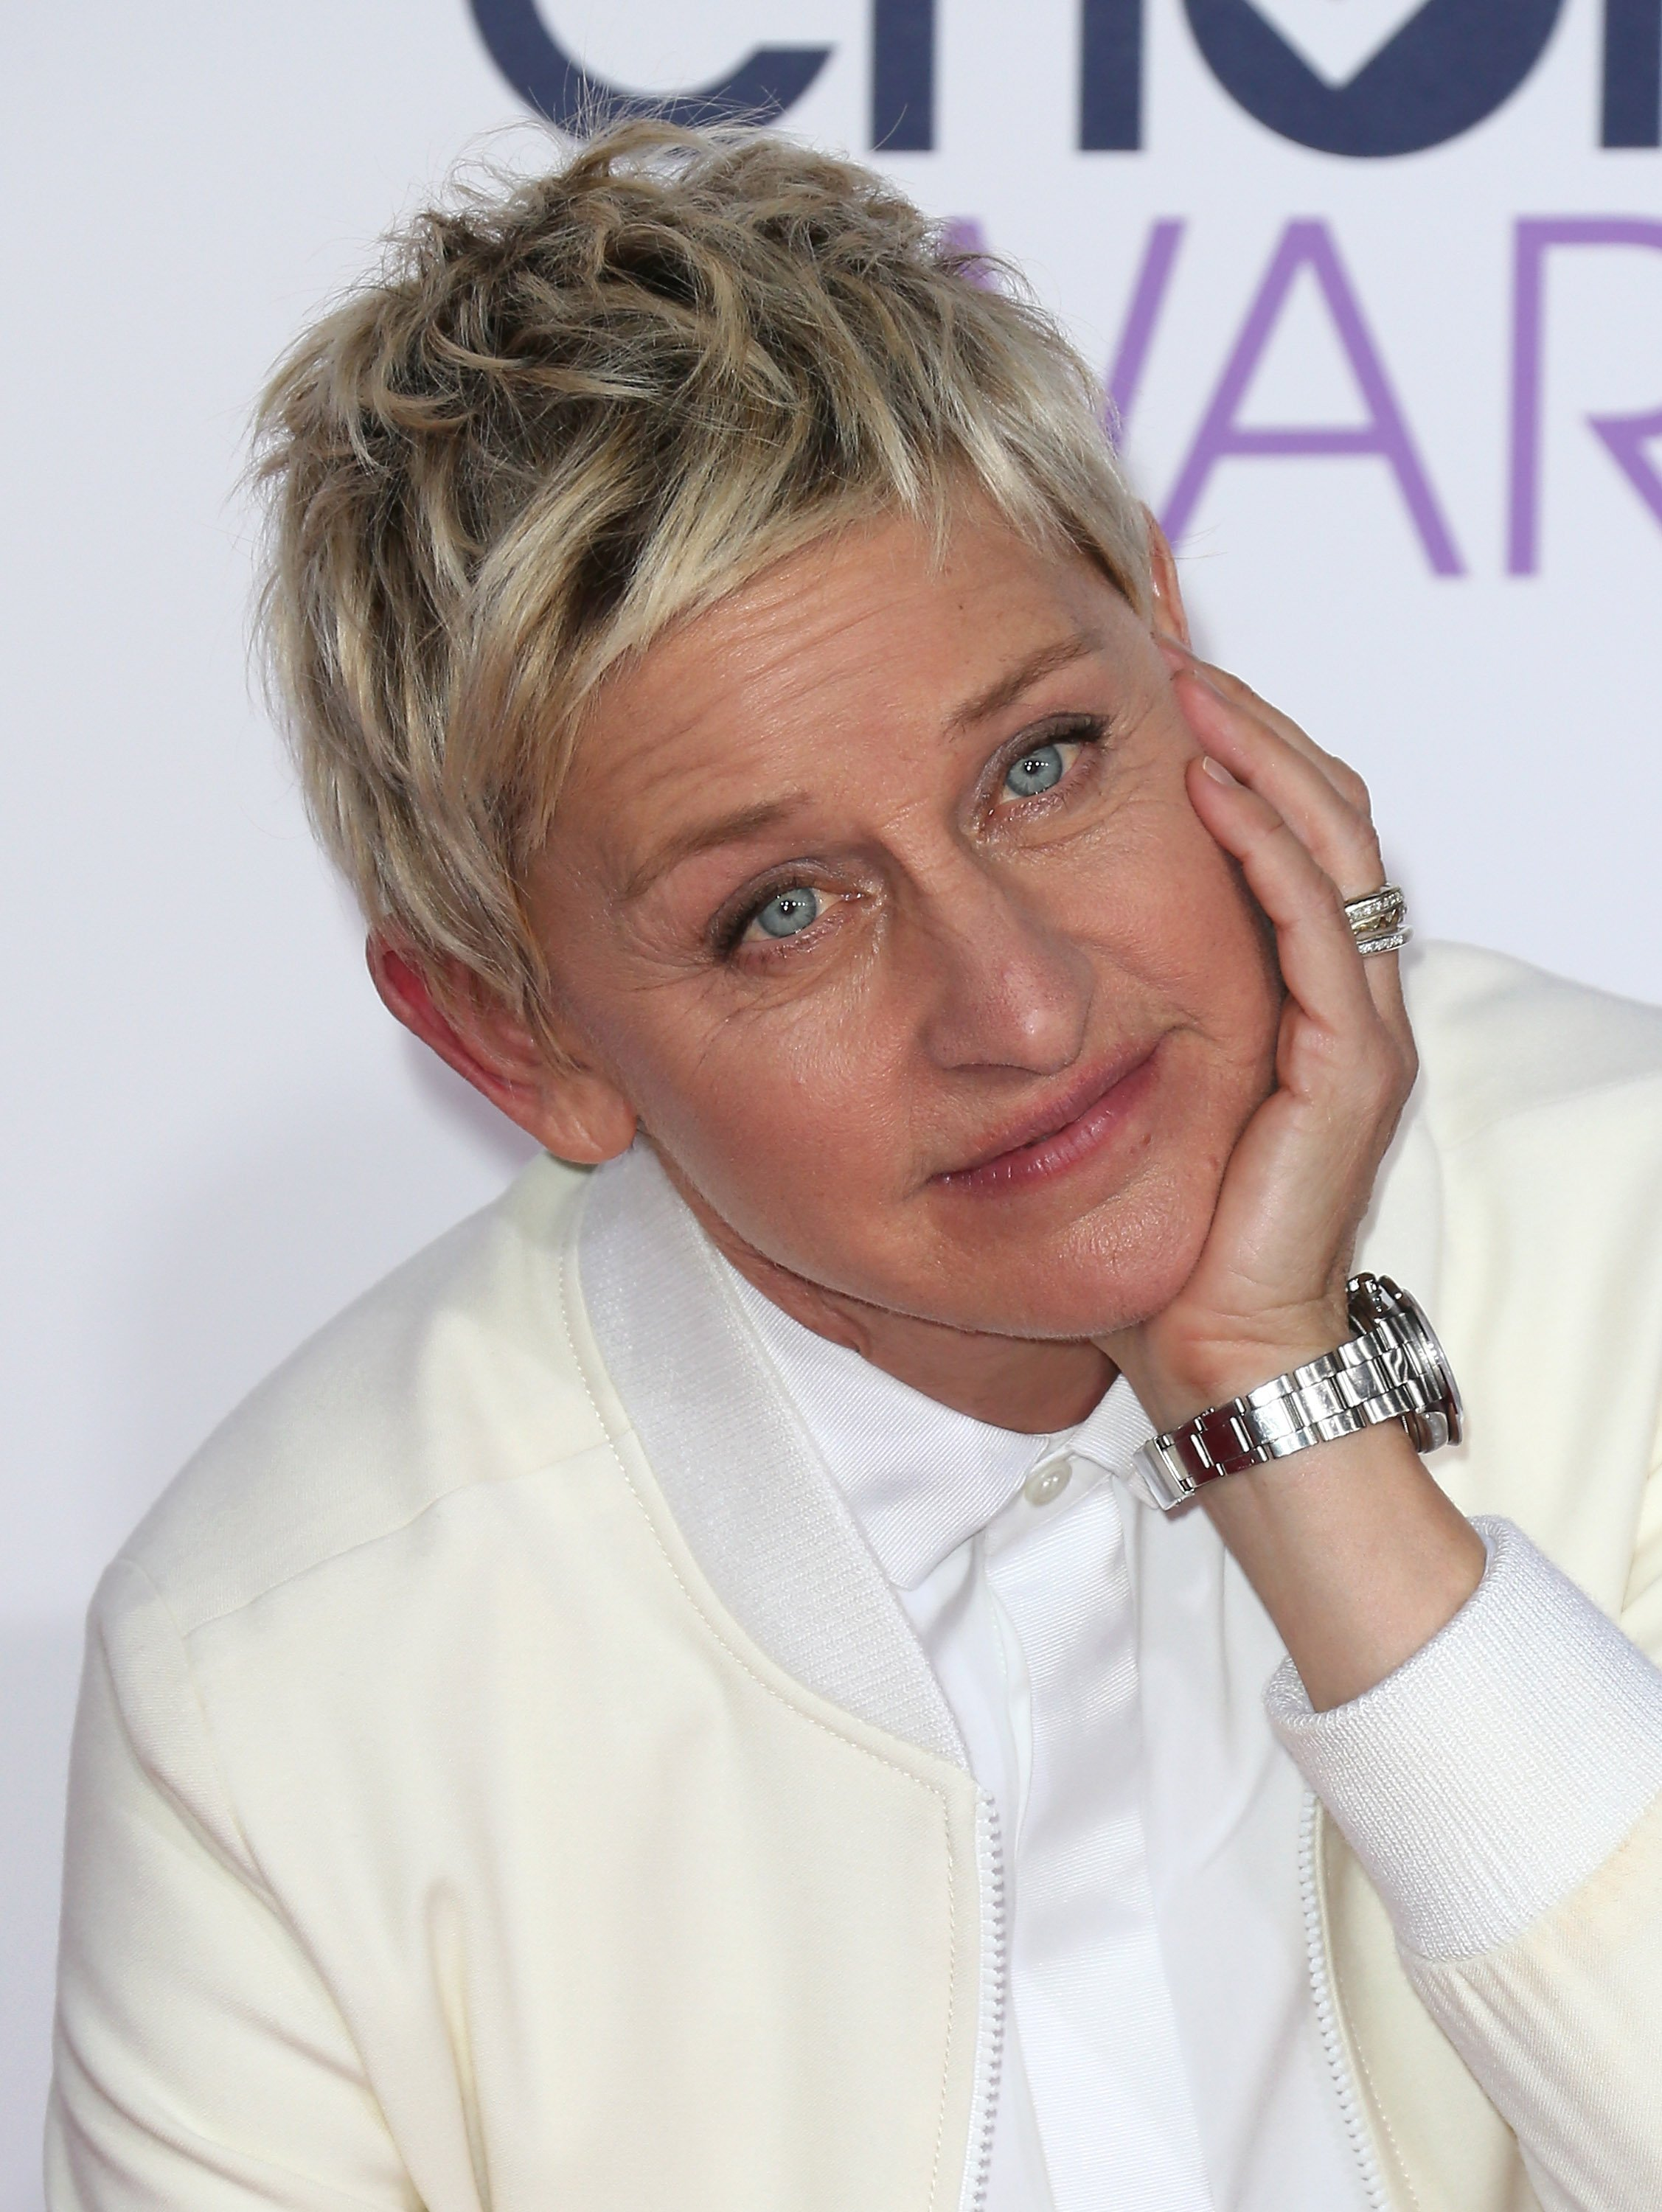 Ellen DeGeneres pictured at the People Choice Awards, 2015, Los Angeles, California.   Photo: Getty Images